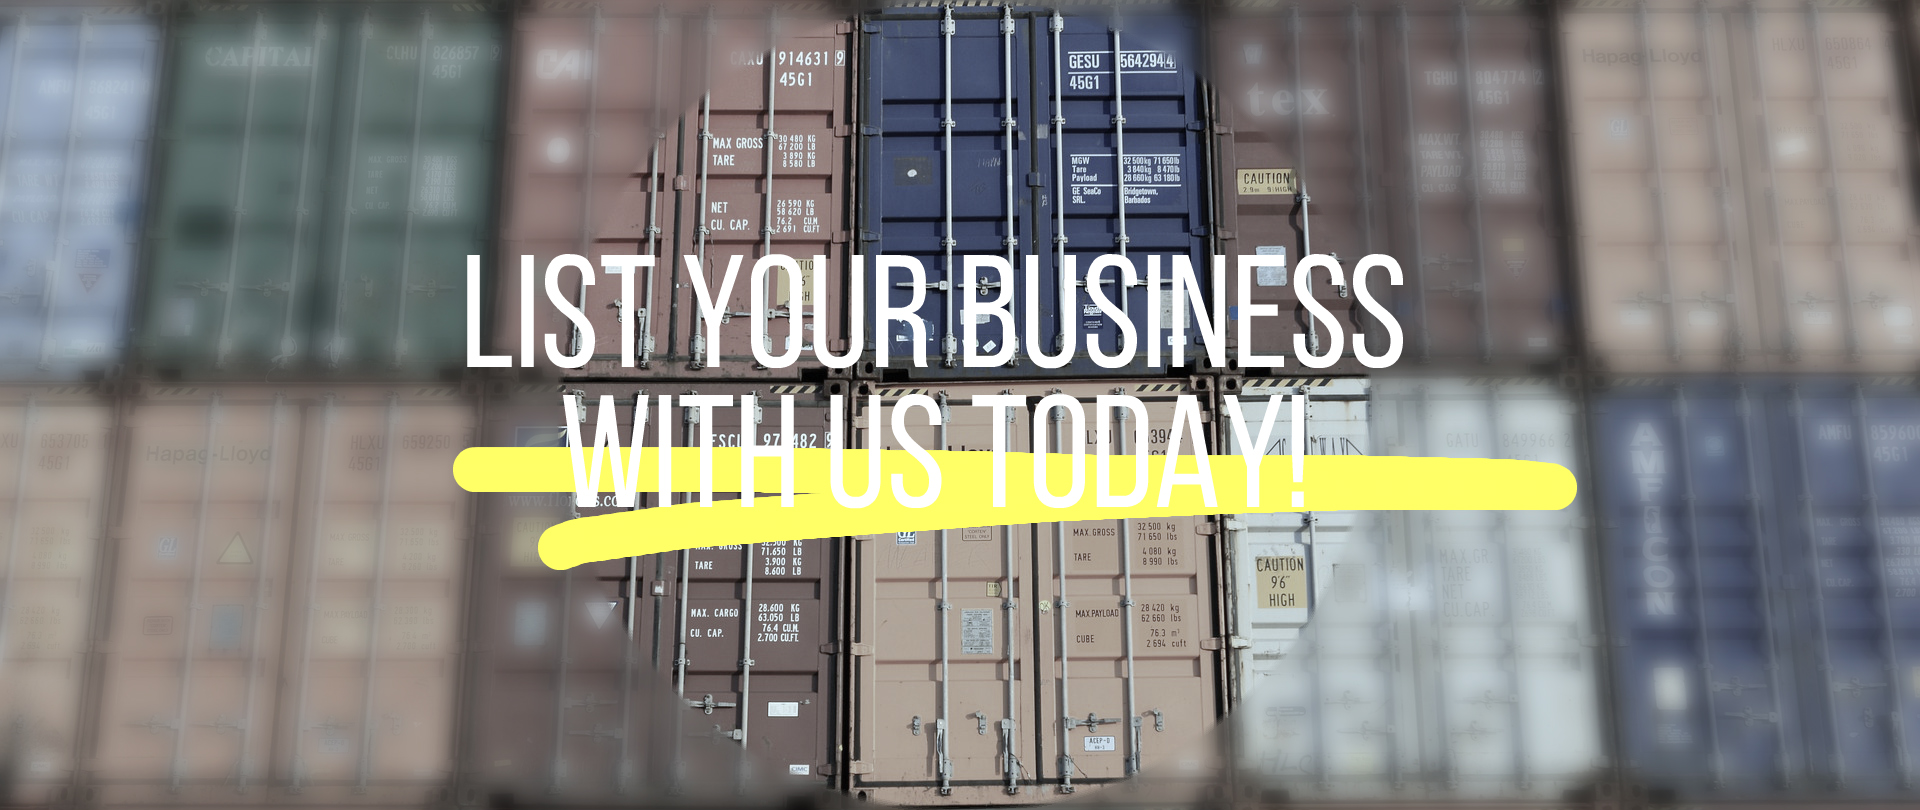 dropship business listing in Malaysia.jpg